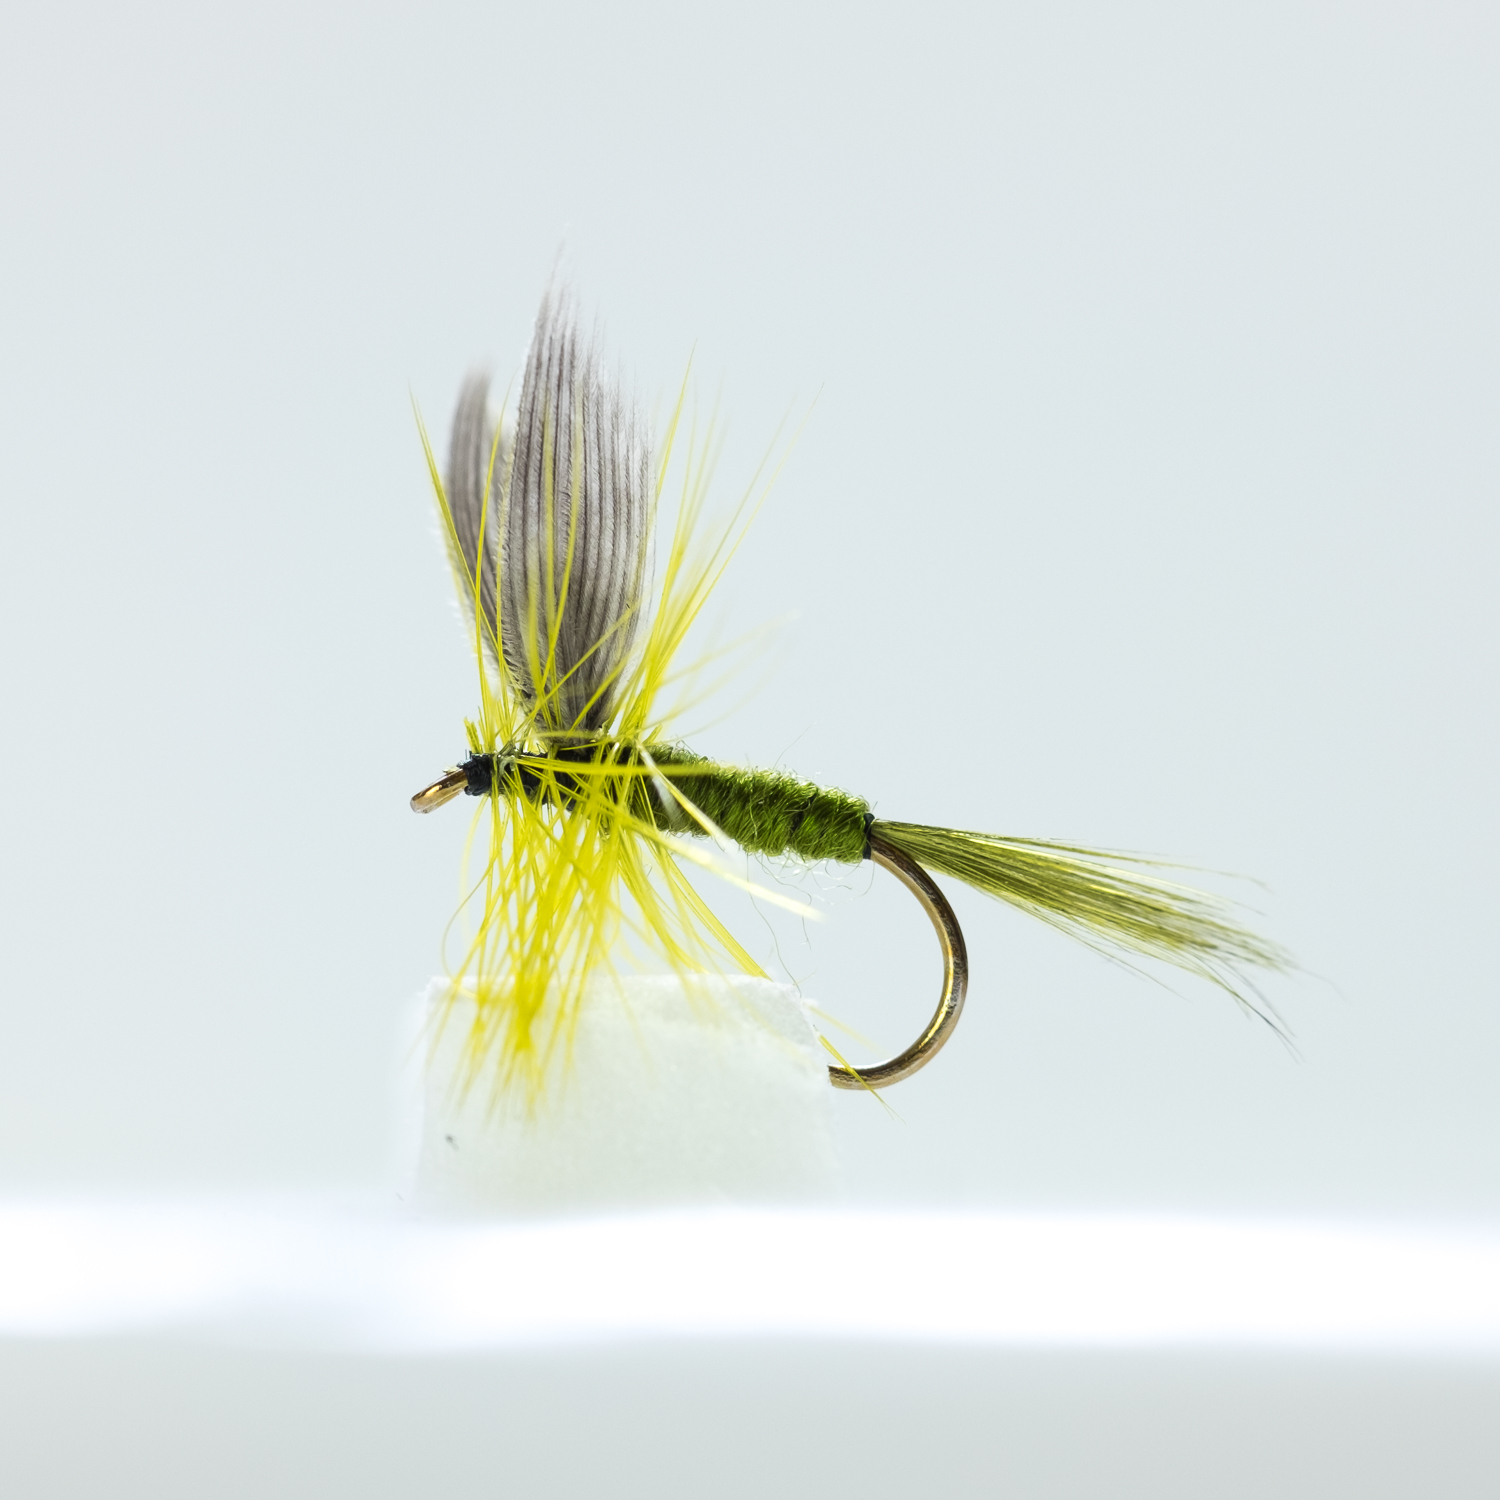 OLIVE GRHE GOLD HEAD NYMPH Trout /& Grayling Fly fishing flies Dragonflies